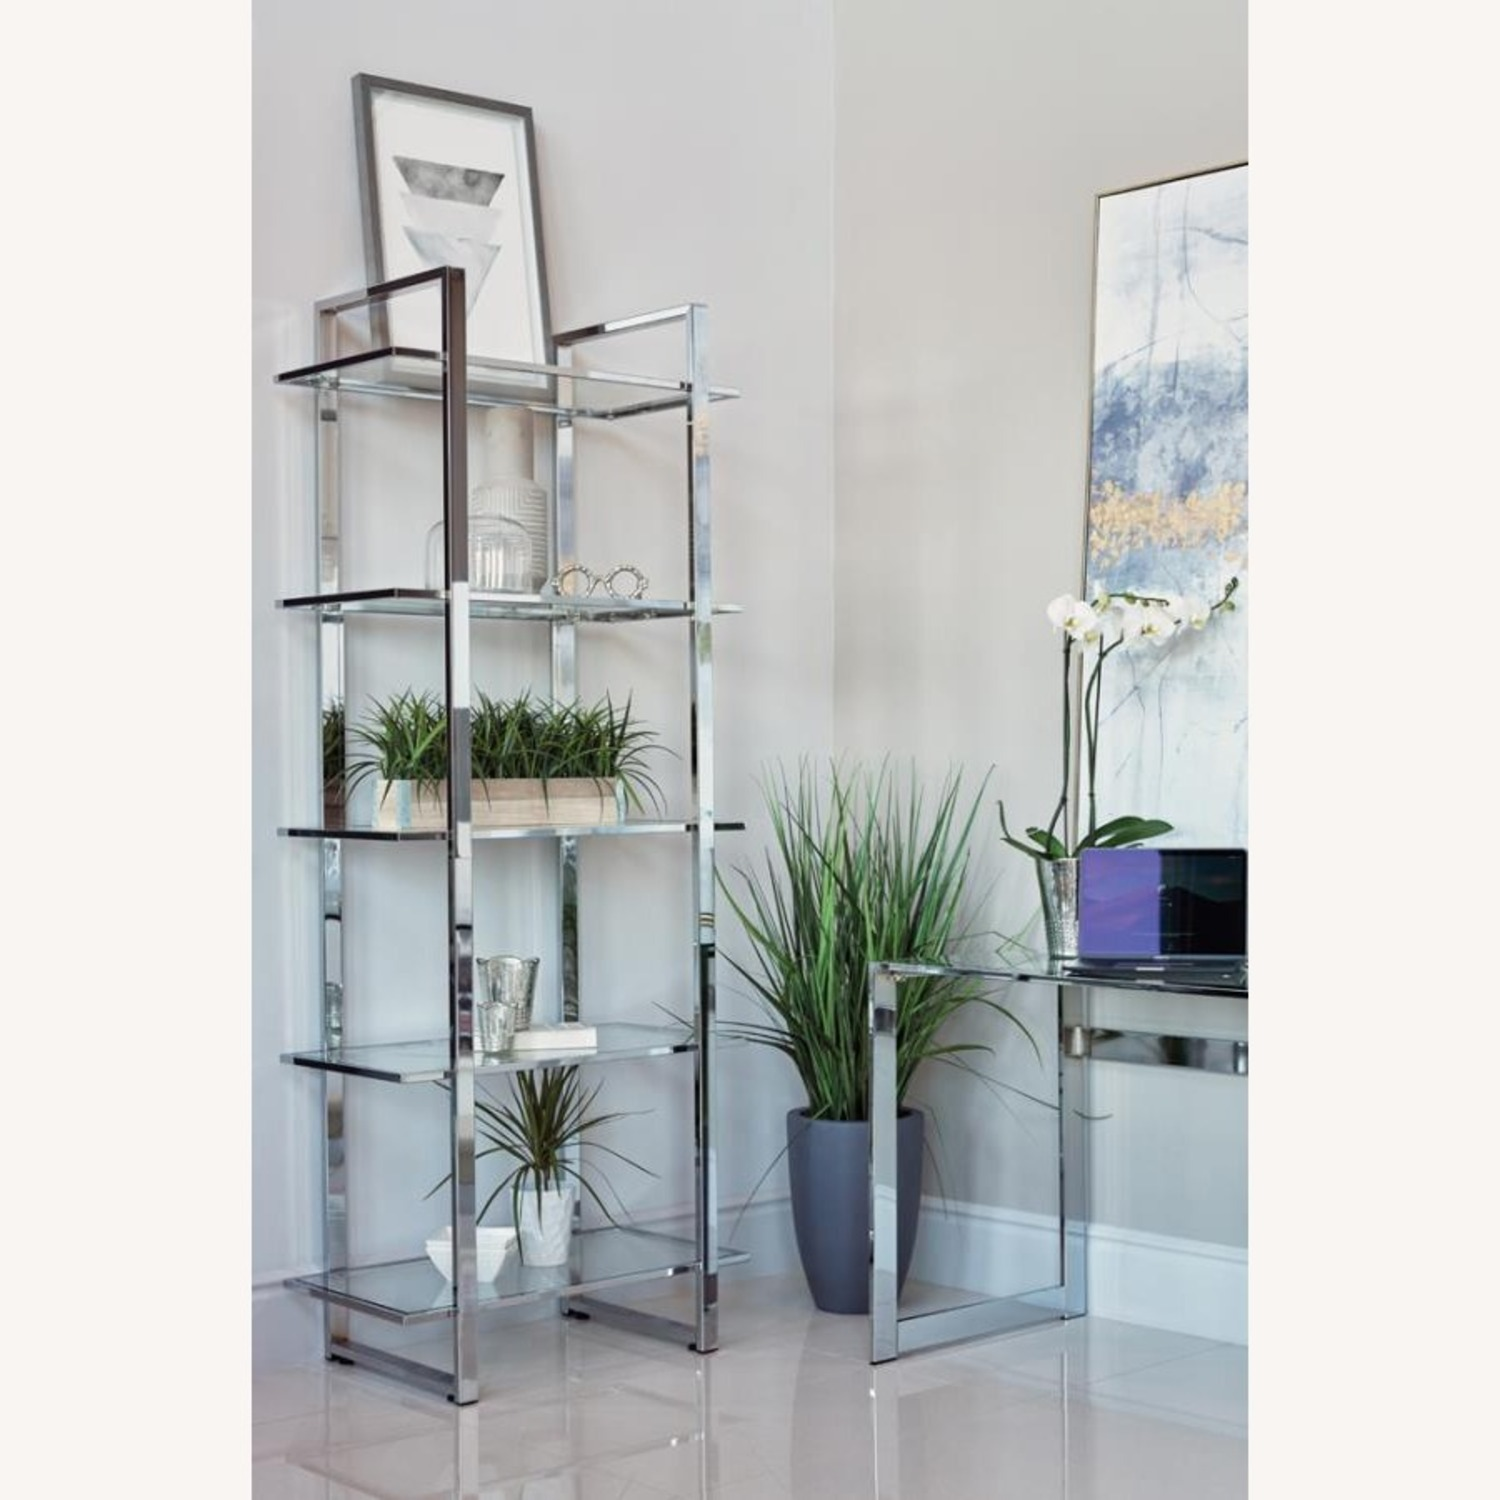 Bookcase In Chrome Finish W/ 5-Tier Shelves - image-2